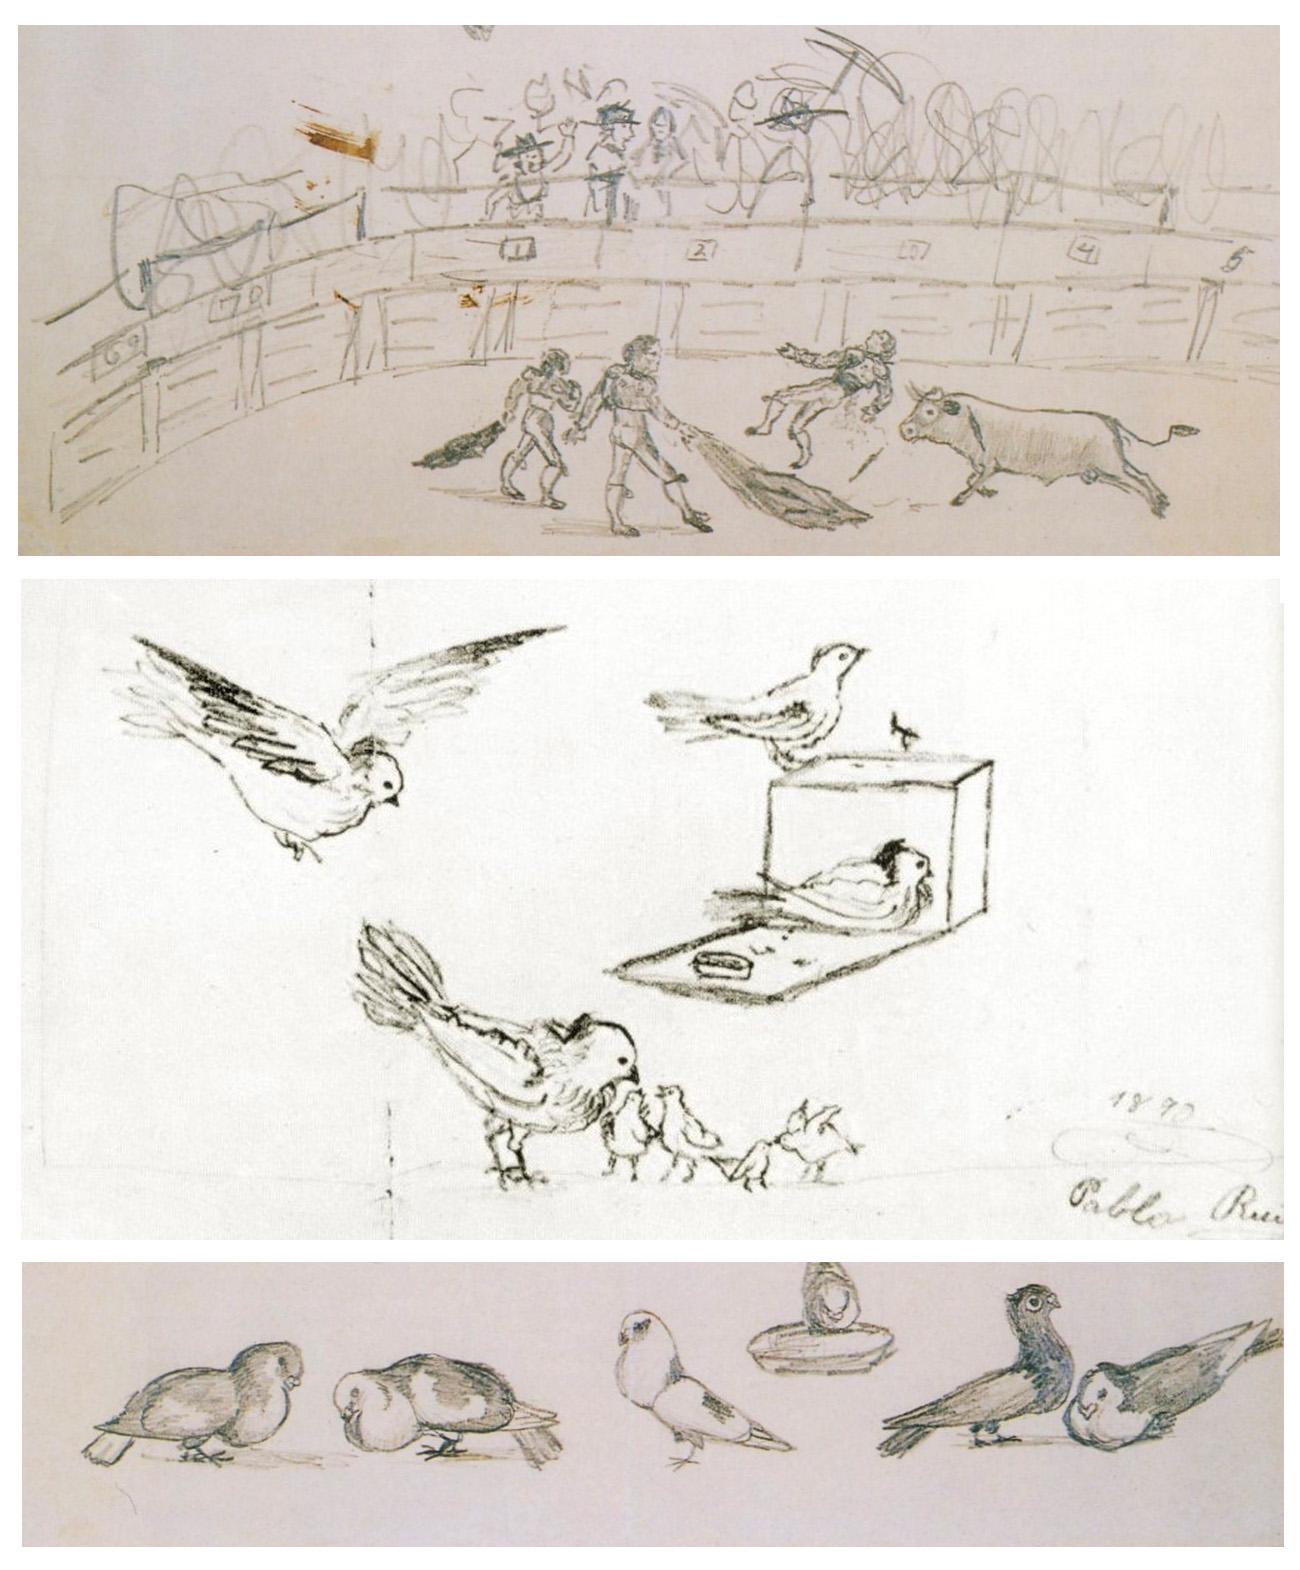 Picasso Childhood Sketches